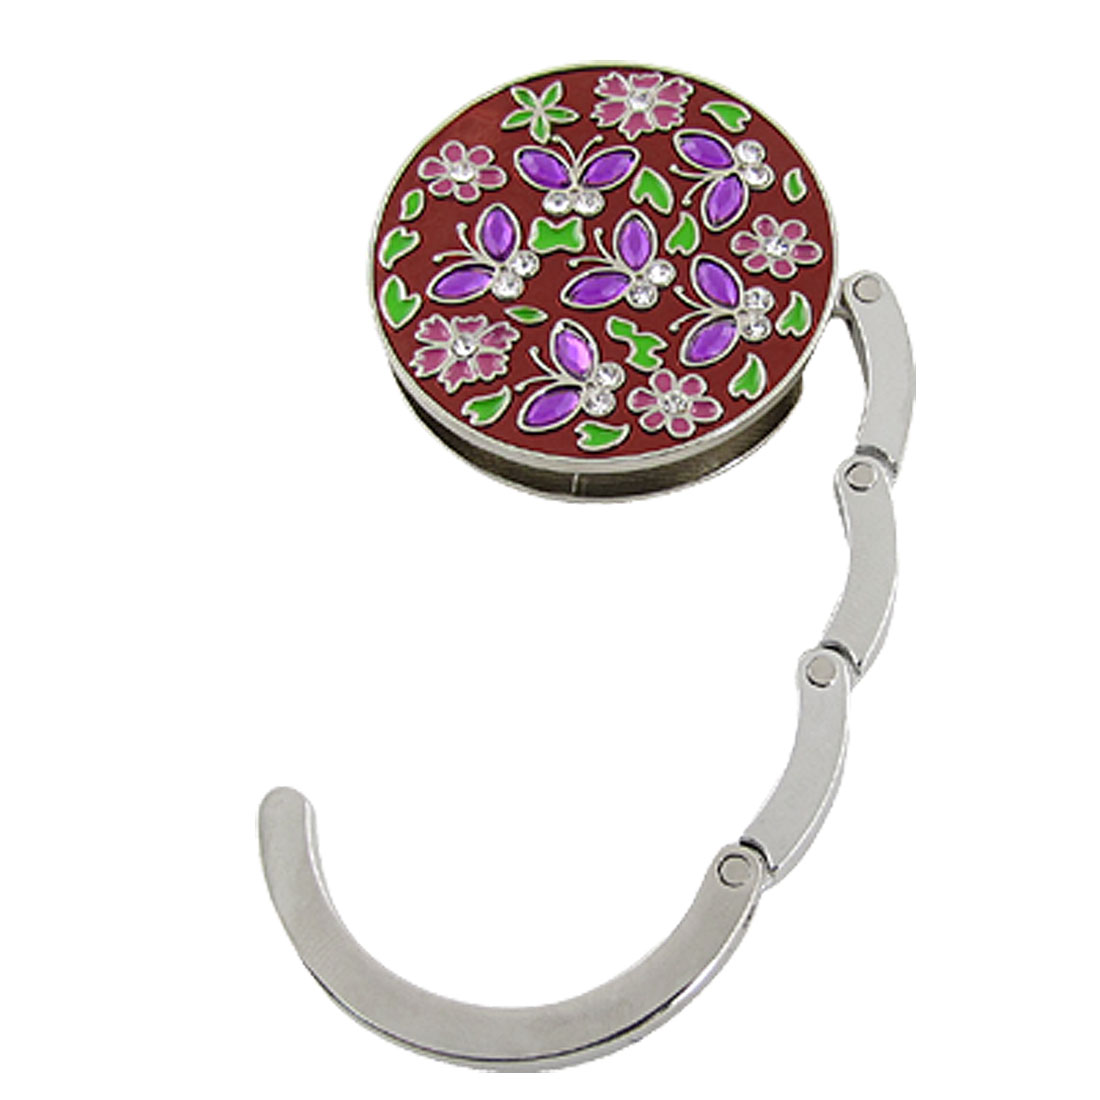 Fuchsia Flower Folding Round Shape Alloy Handbag Hook